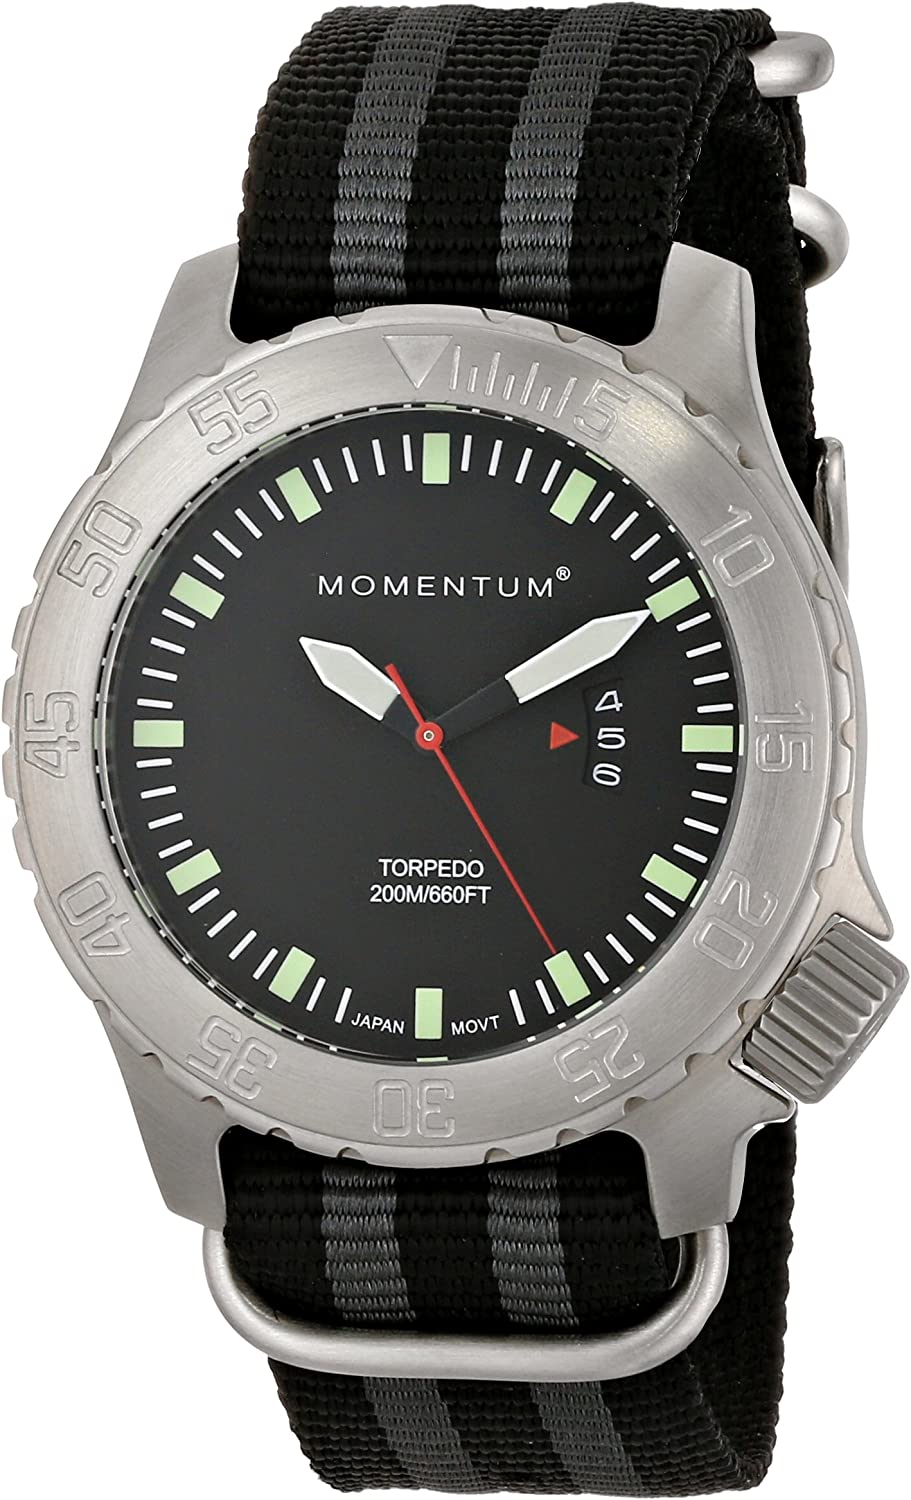 Men s Sports Watch Torpedo Dive Watch by Momentum Stainless Steel Watches for Men Analog Watch with Japanese Movement Water Resistant 200M 660FT Classic Watch – Black 1M-DV74B7S